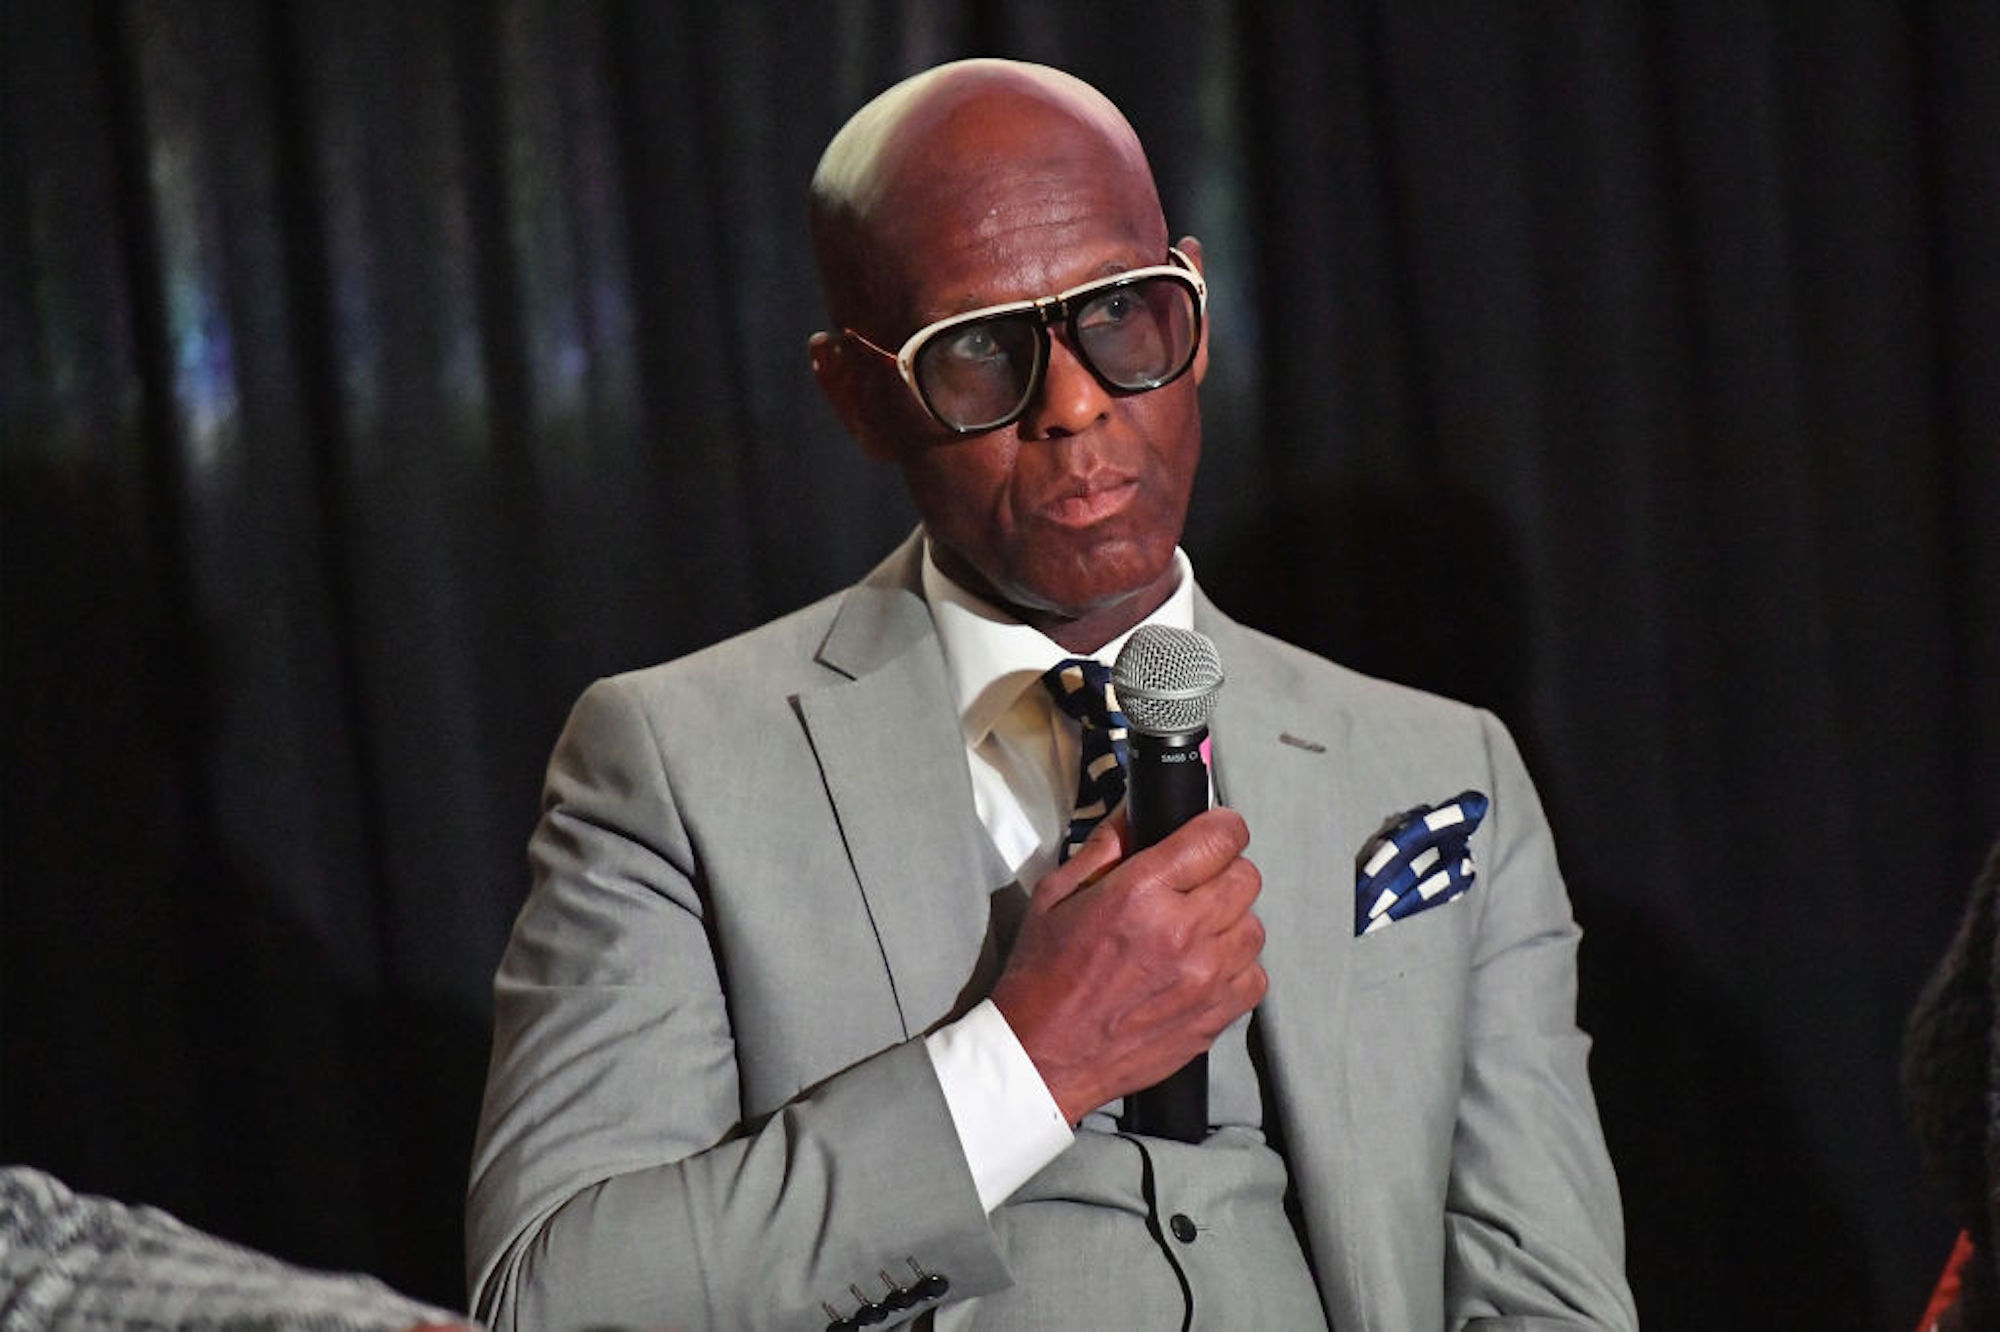 195b169b61879 Dapper Dan Once Made a Name Knocking Off Gucci. Now They re Paying to Tell  His Story